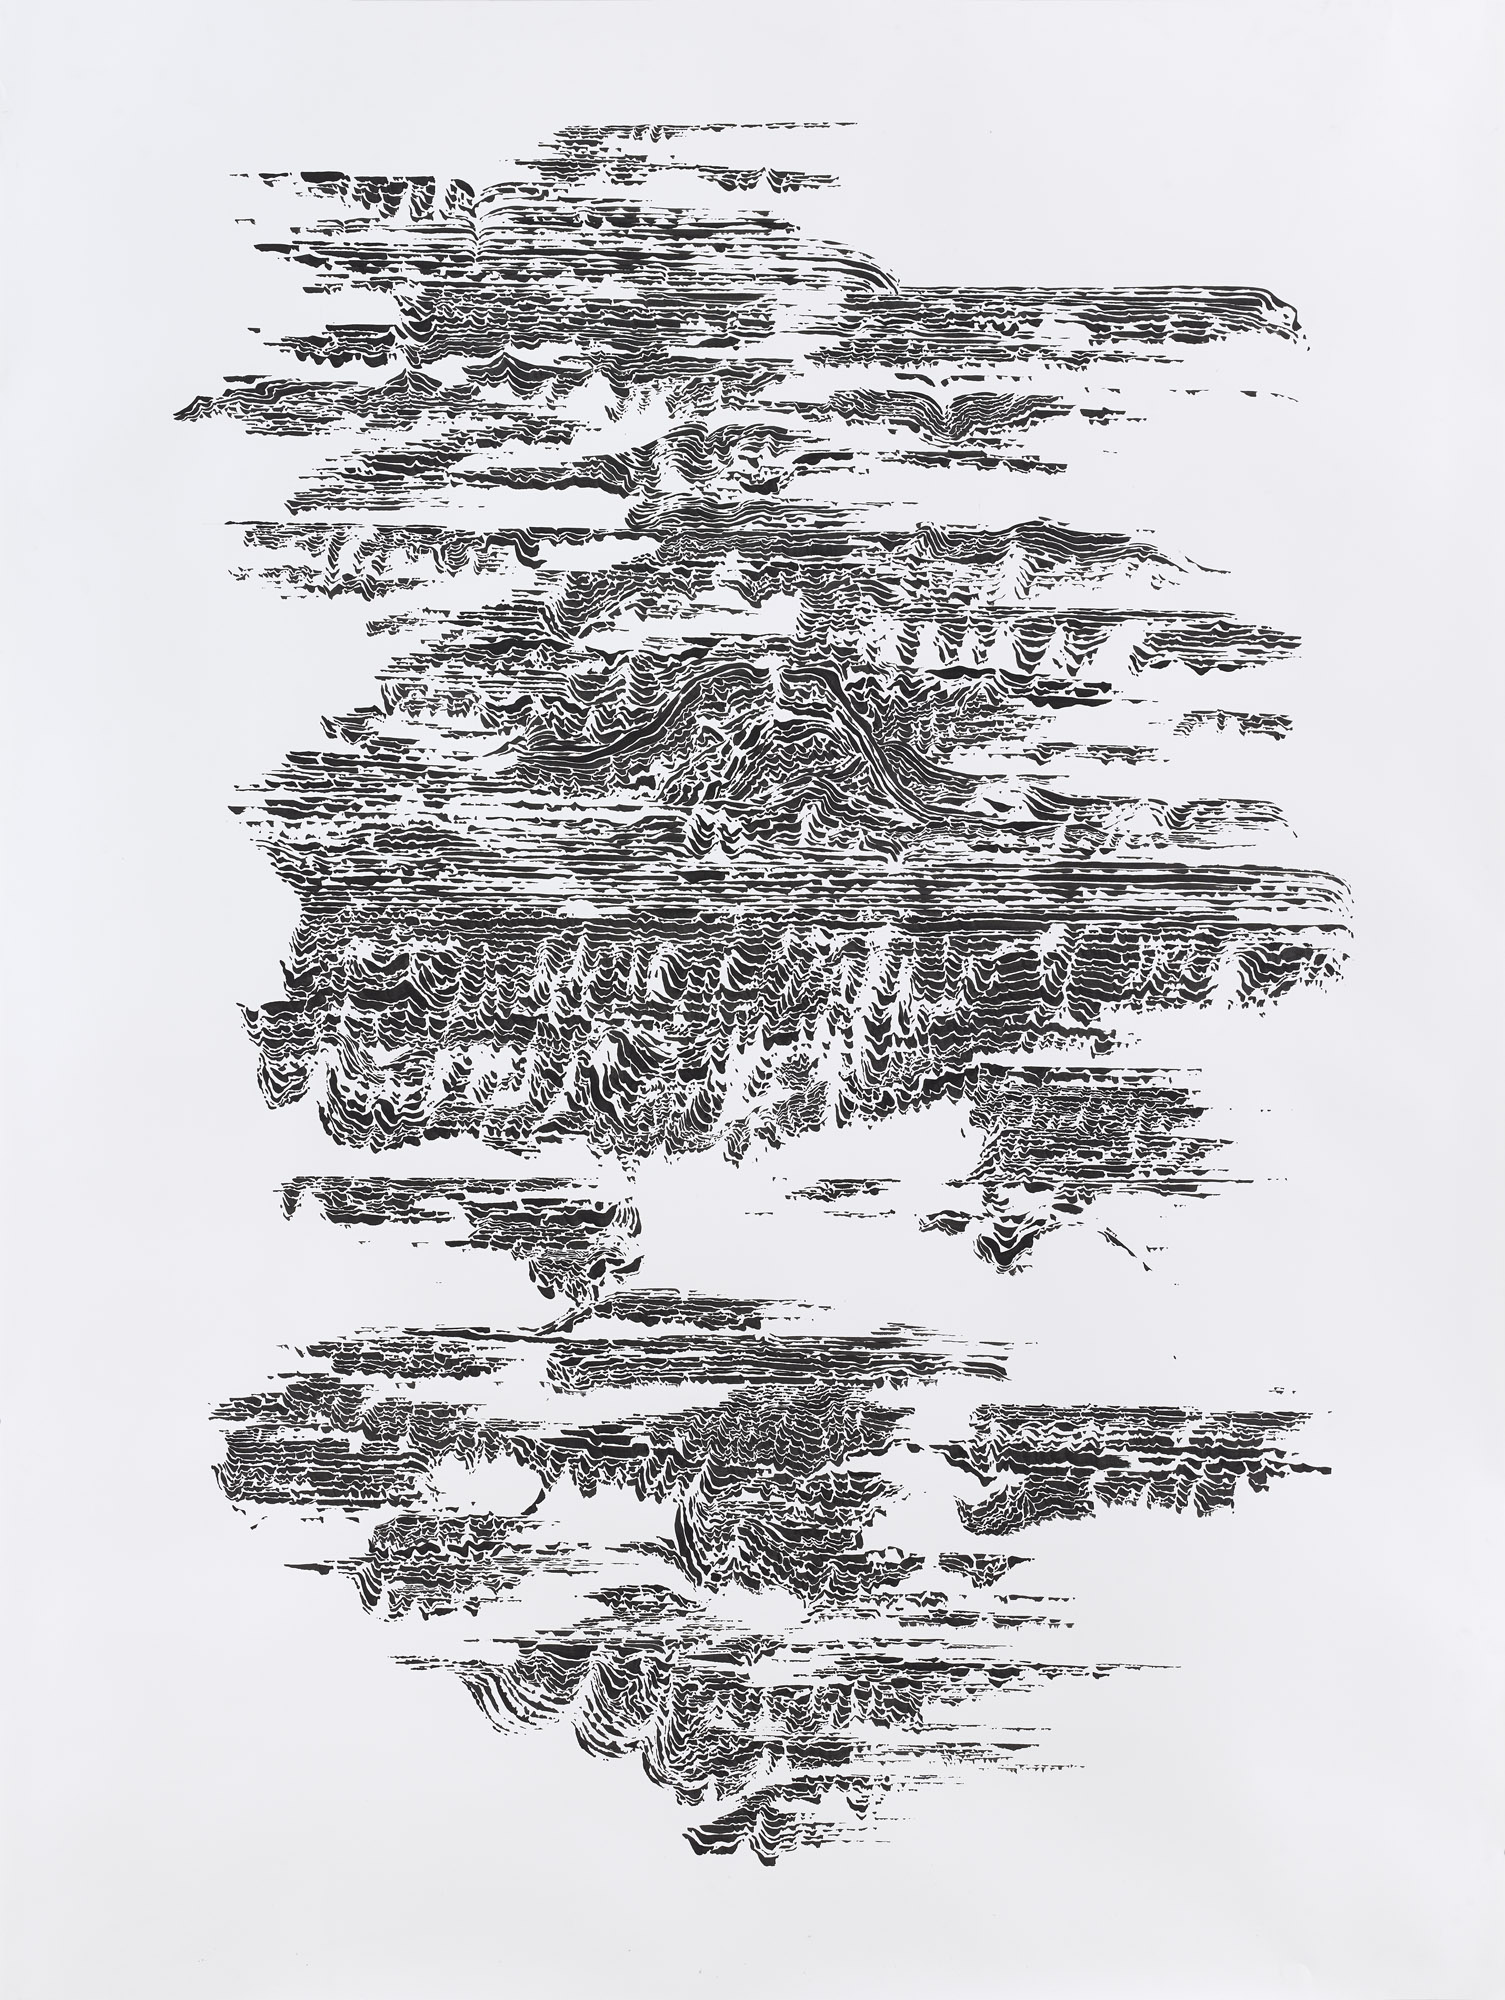 BK P7440 / untitled / ink on paper / 200x150cm / 2015 | private collection berlin